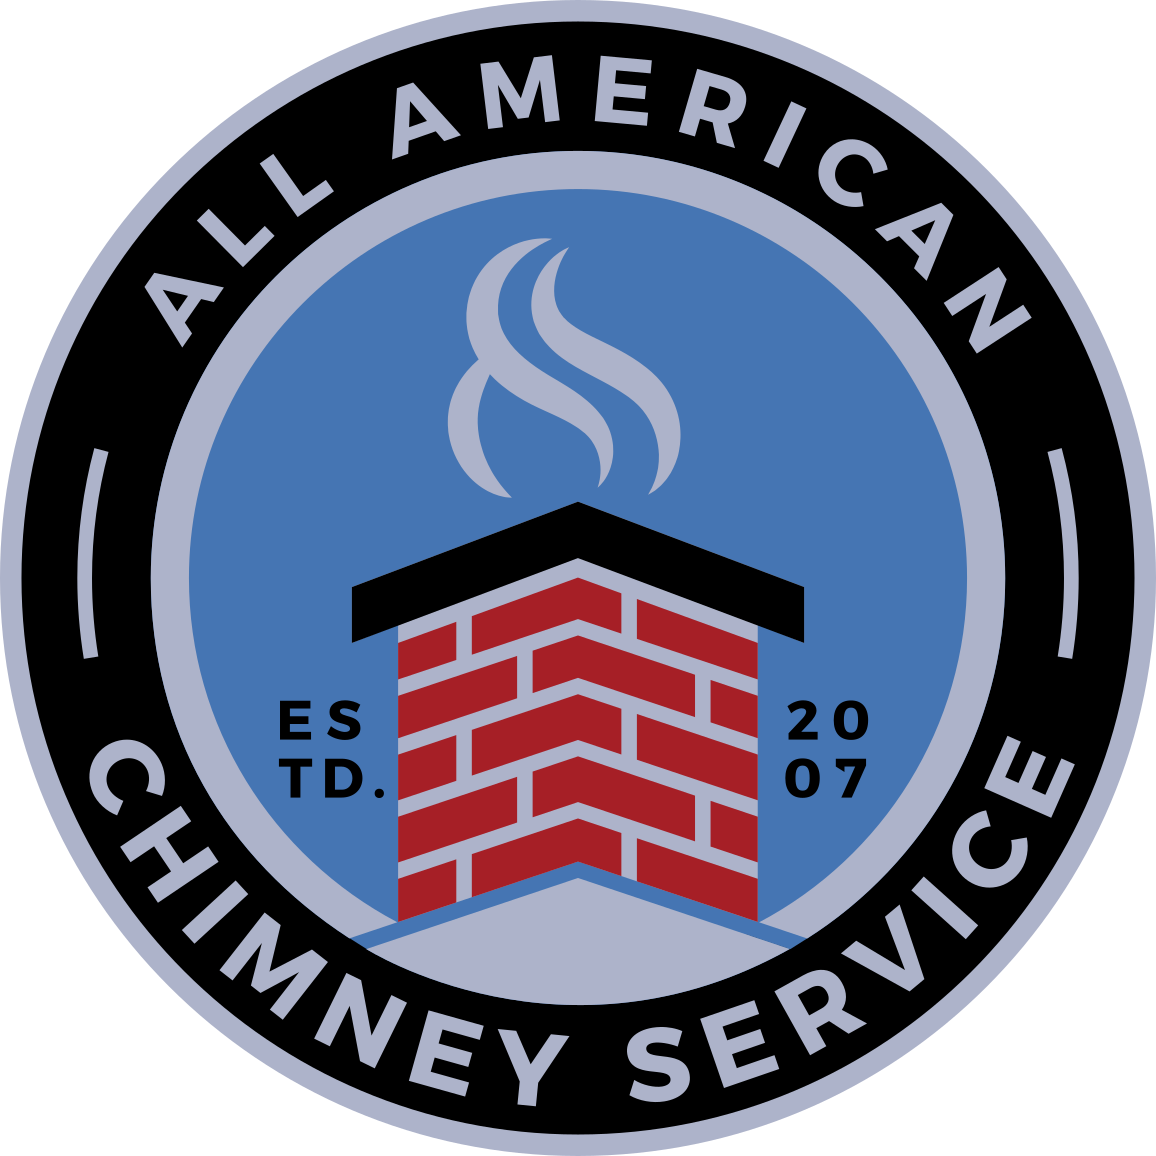 All American Chimney Service, LLC.